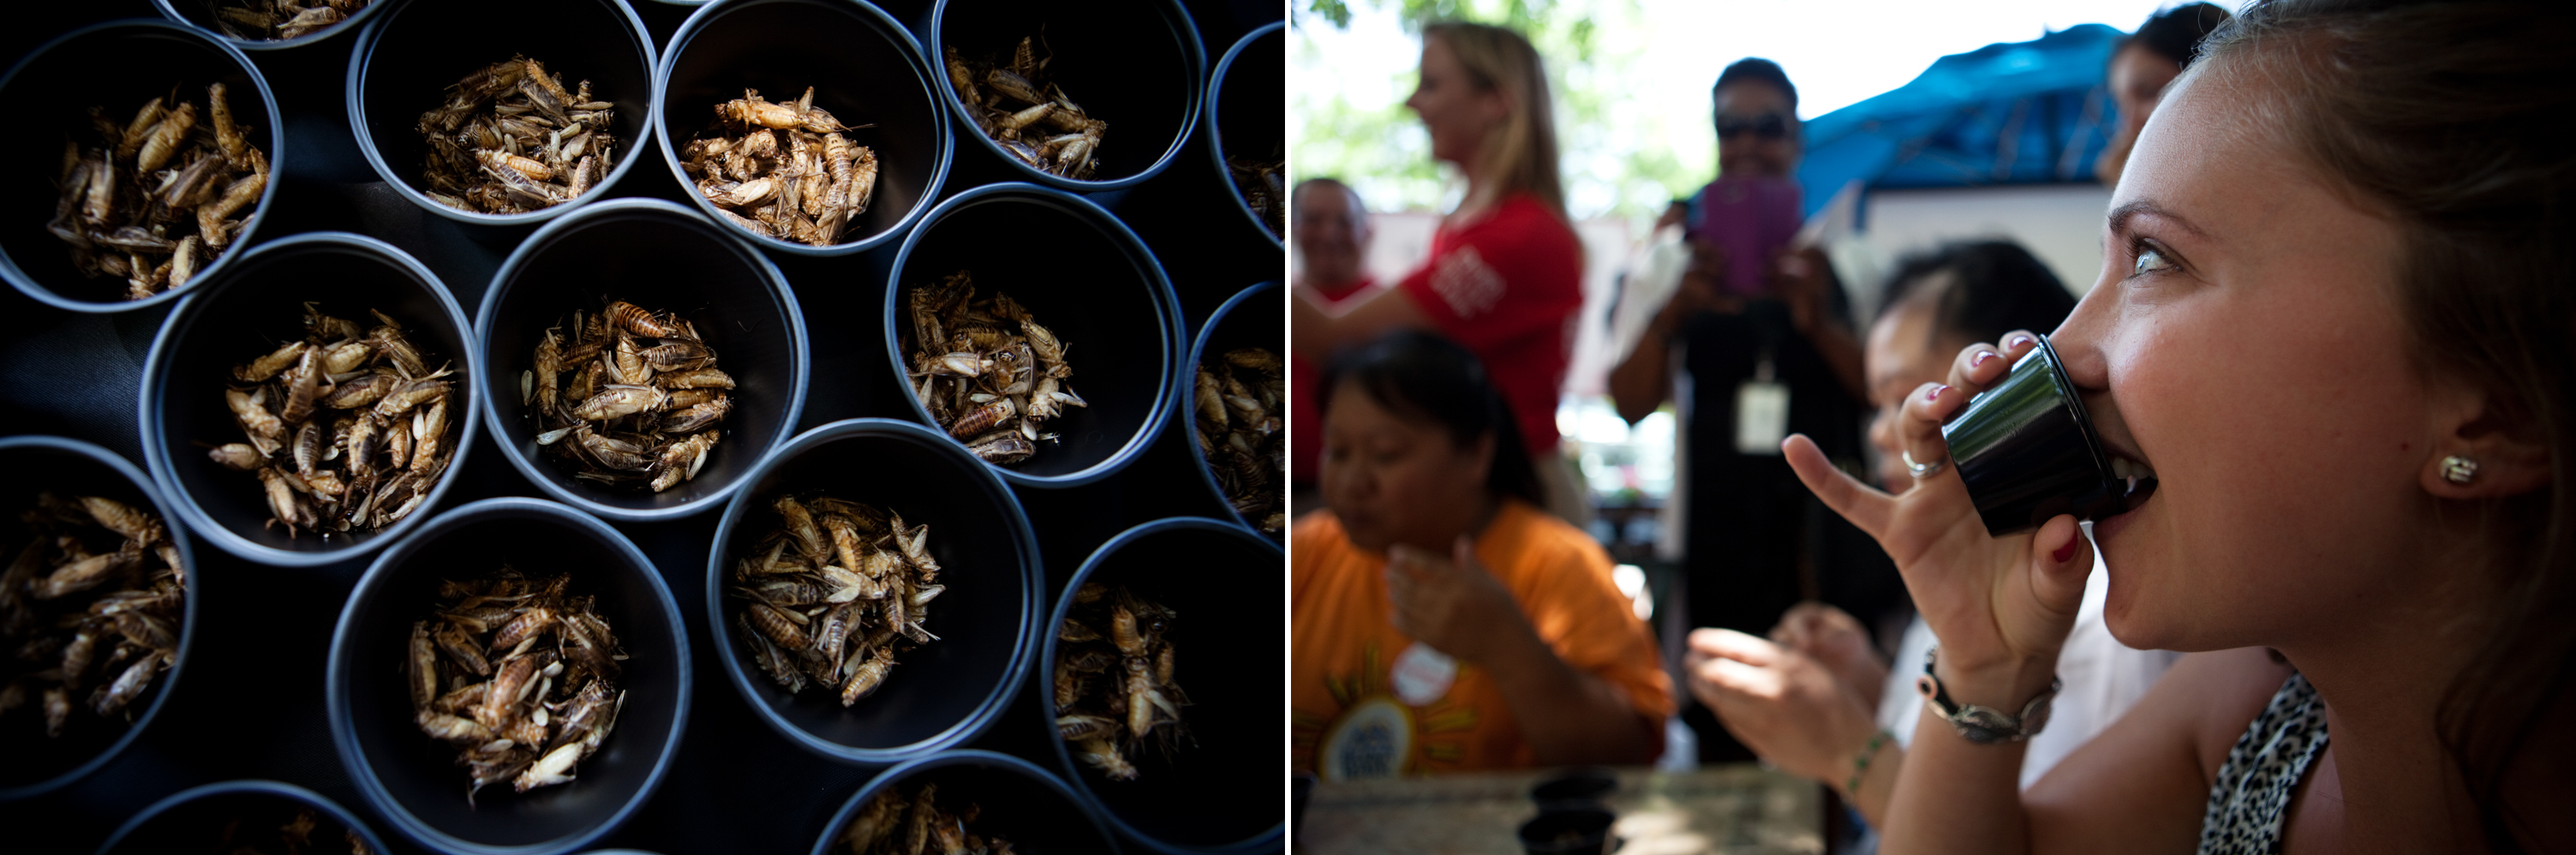 Katherine Eklund, with D.C Central Kitchen, competes in a cricket eating competition. Photo: Maggie Starbard/NPR